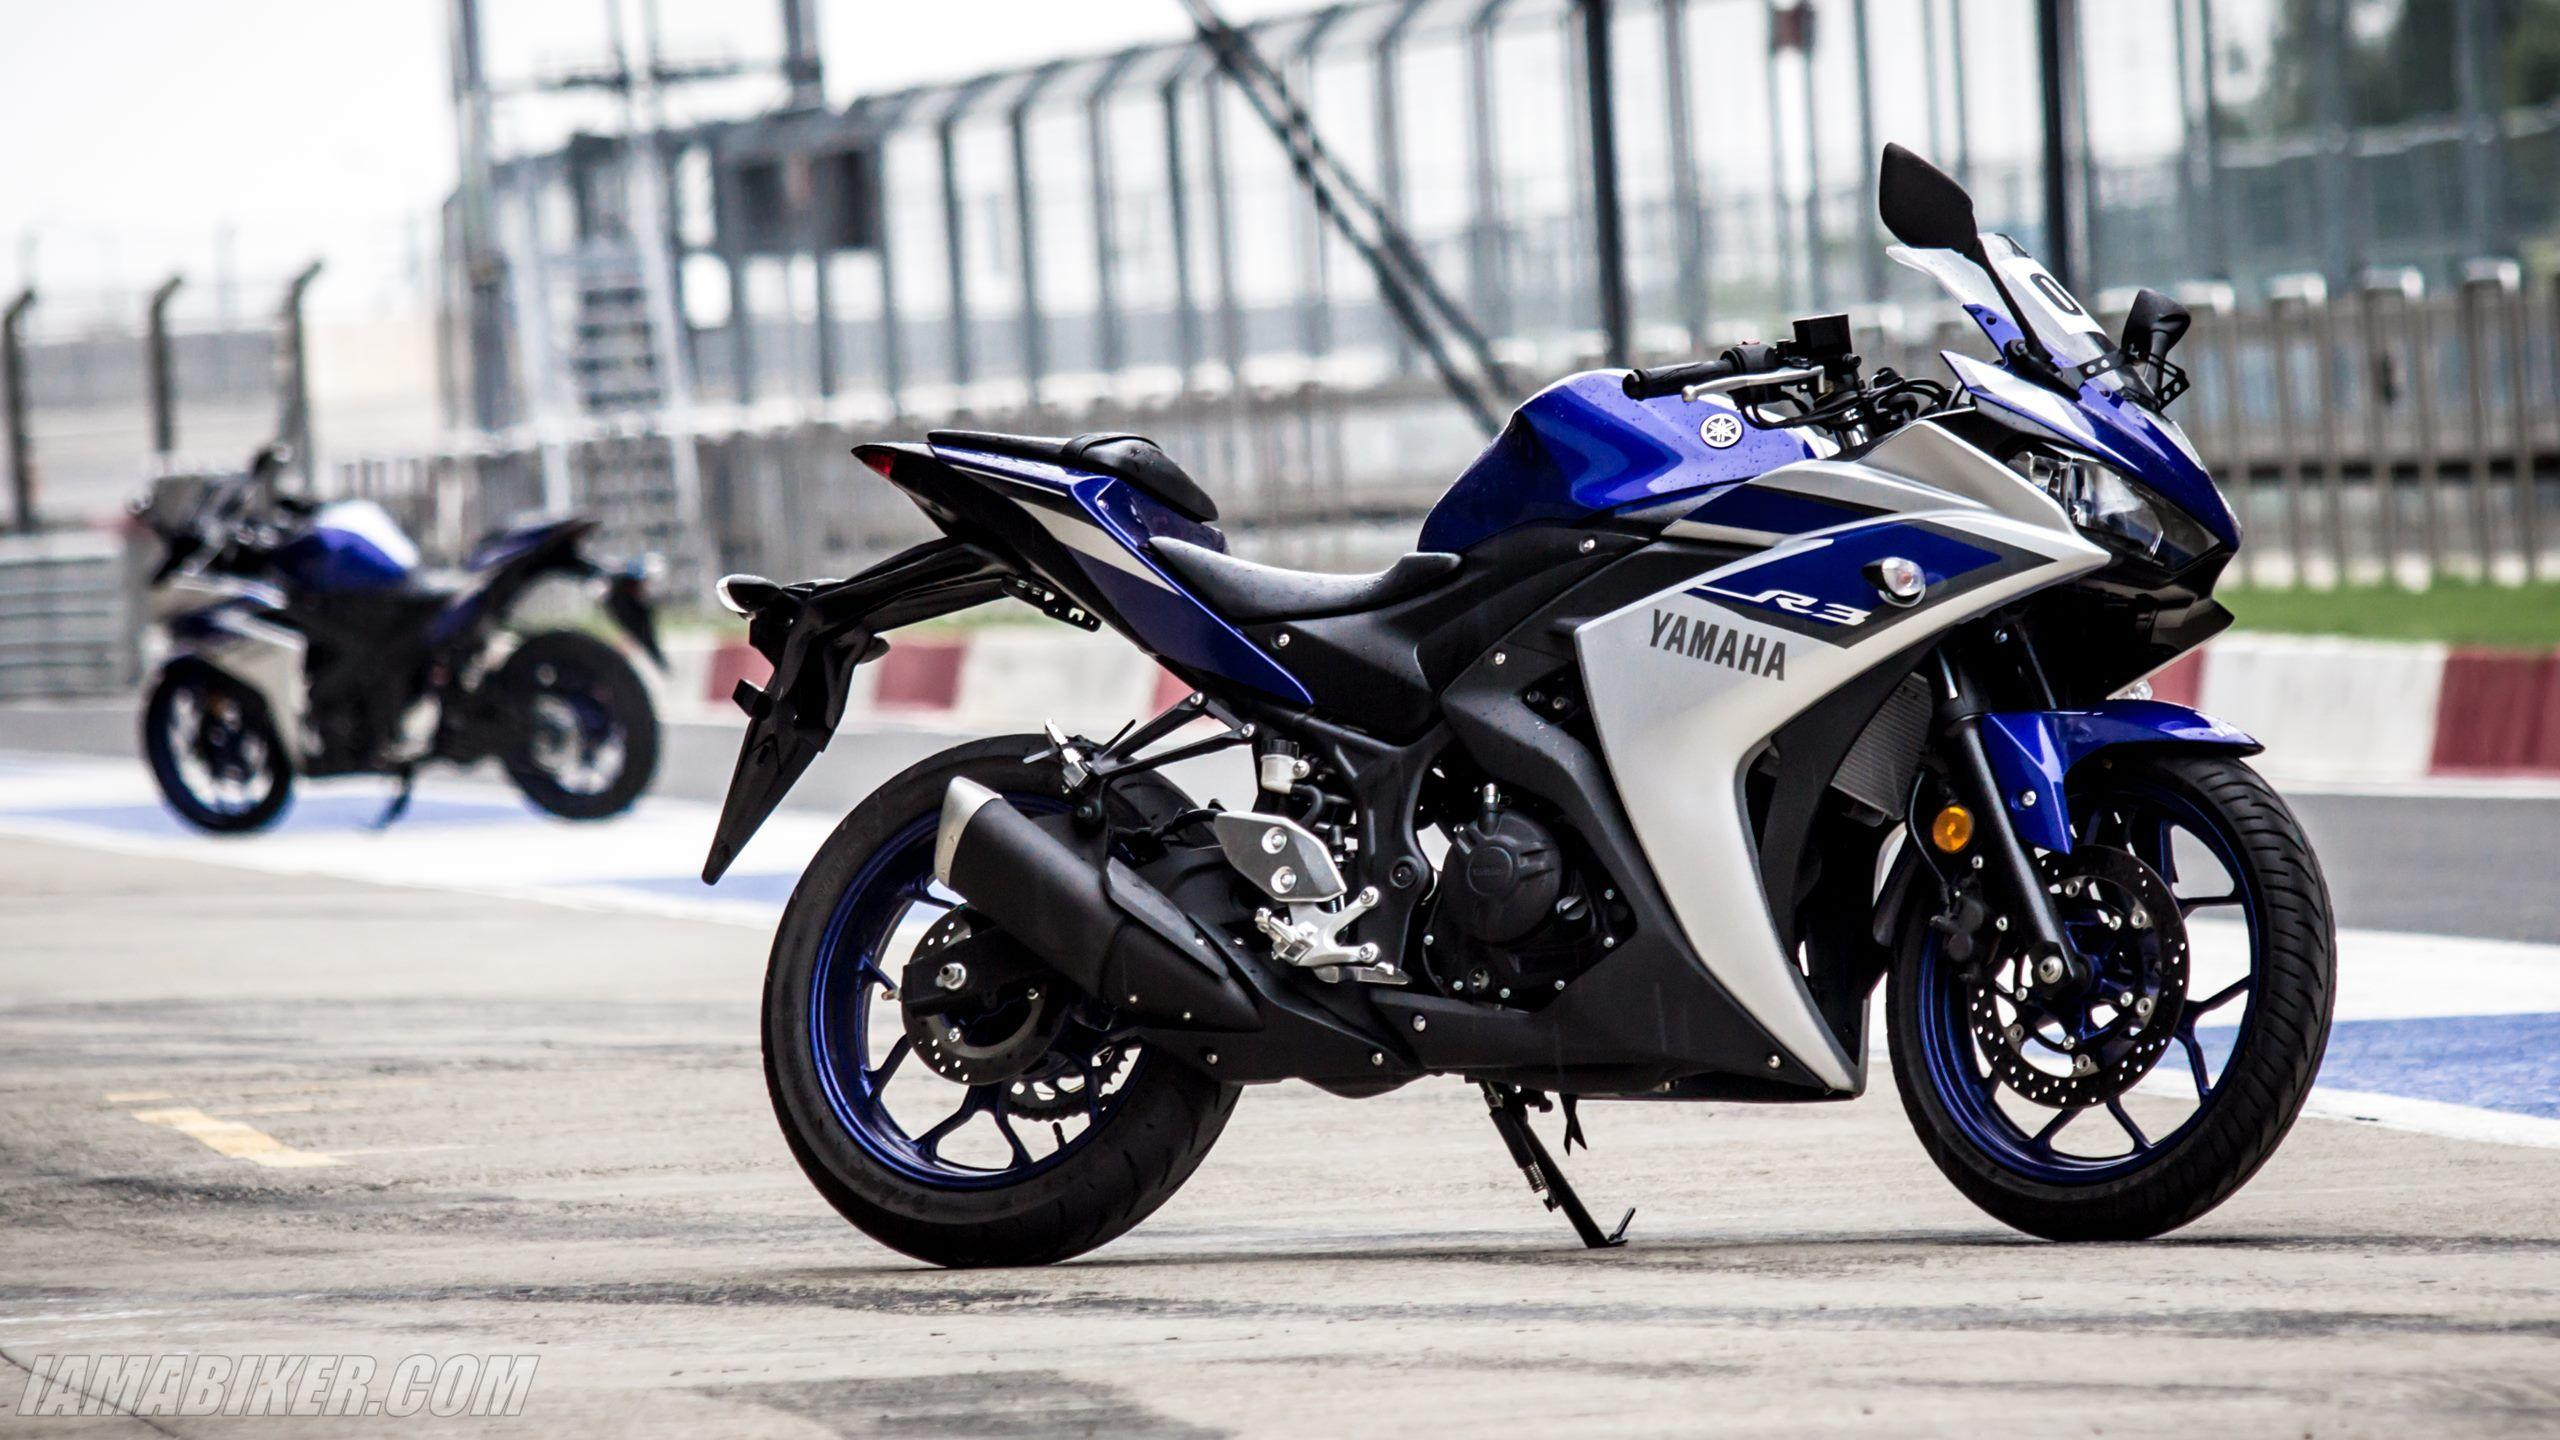 Yamaha Yzf R3 Hd Wallpapers Hd Ktm Rc 390 Images Download 1544345 Hd Wallpaper Backgrounds Download